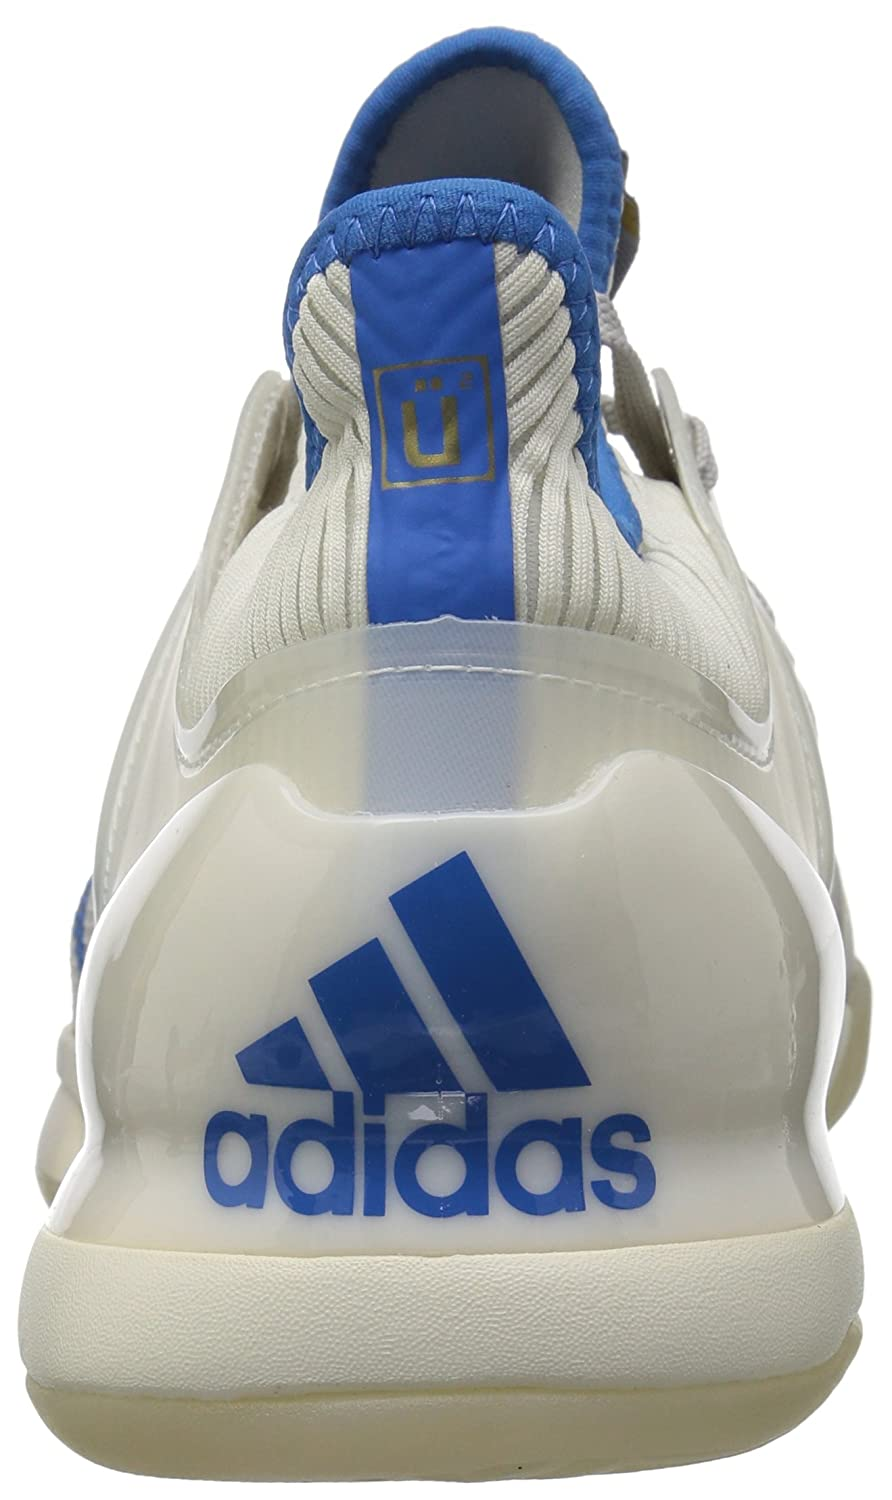 best cheap c4f08 711cf Amazon.com  adidas Mens Adizero Ubersonic 50YRS LTD Tennis Shoe  Tennis   Racquet Sports